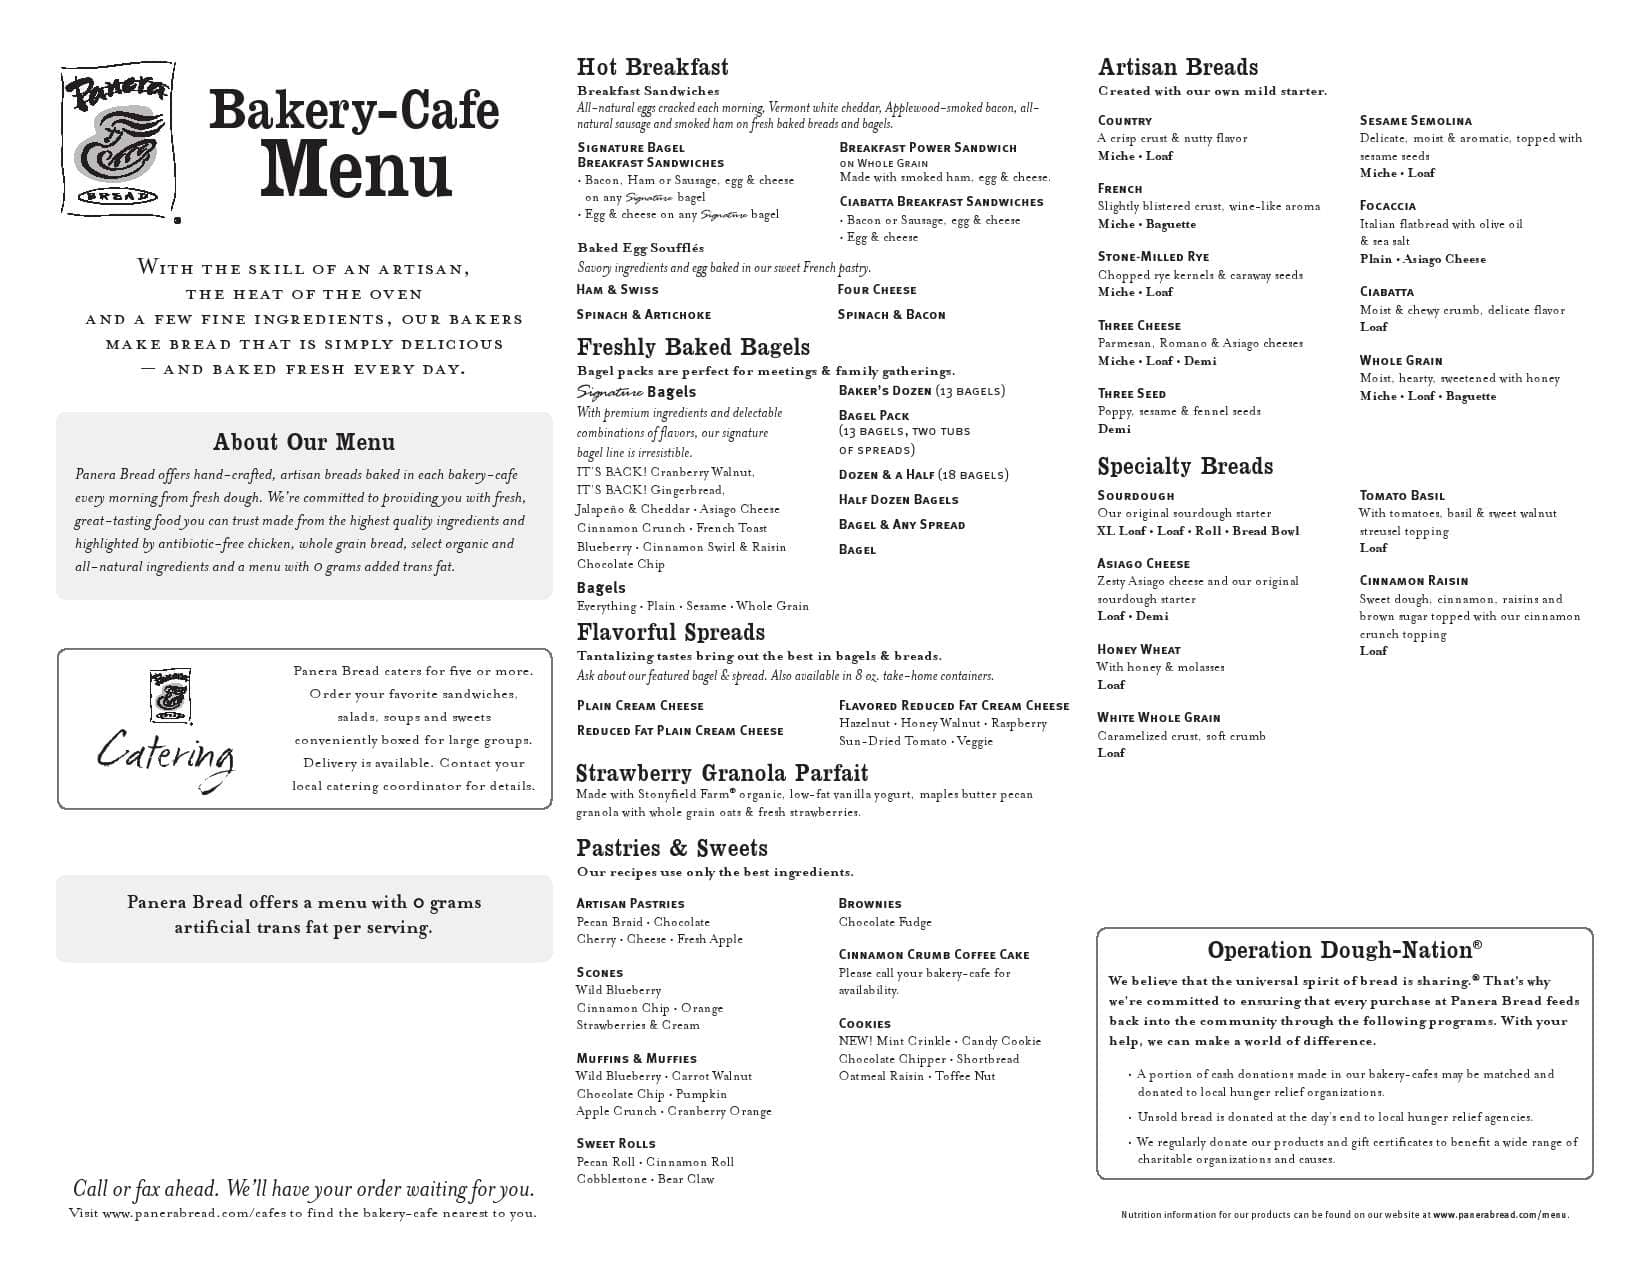 On the Panera website there's lists of menu items without gluten. Menu items are separated into two lists, one with items that are gluten-free without modification and another that requires.